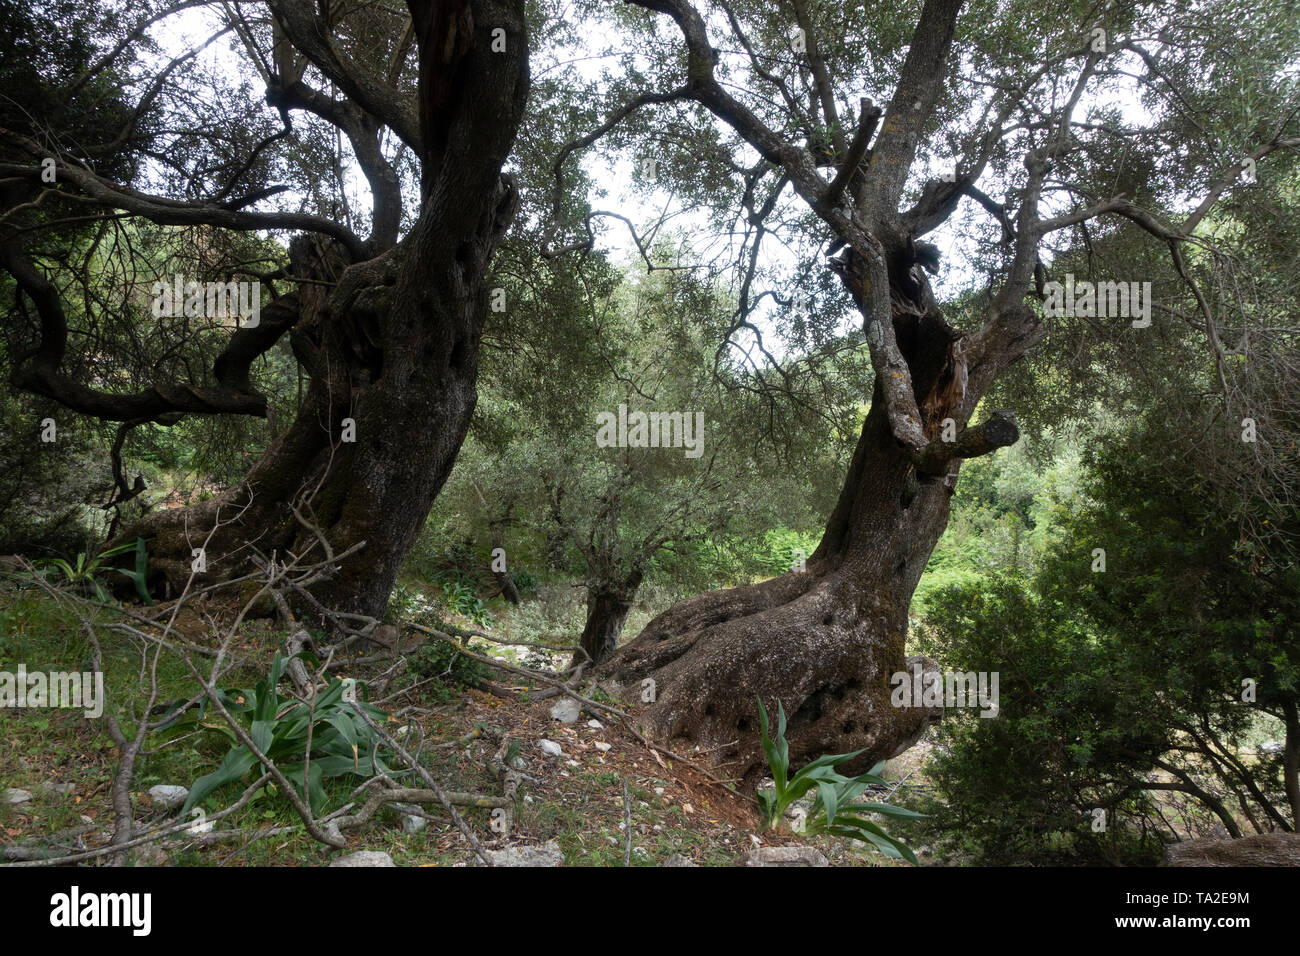 Ancient olive trees in Kioni, Ithaca, Greece. Ithaca, Ithaki or Ithaka is a Greek island located in the Ionian Sea to the west of continental Greece. Ithacas main island has an area of 96 square kilometres. It is the second-smallest of seven main Ionian Islands. - Stock Image